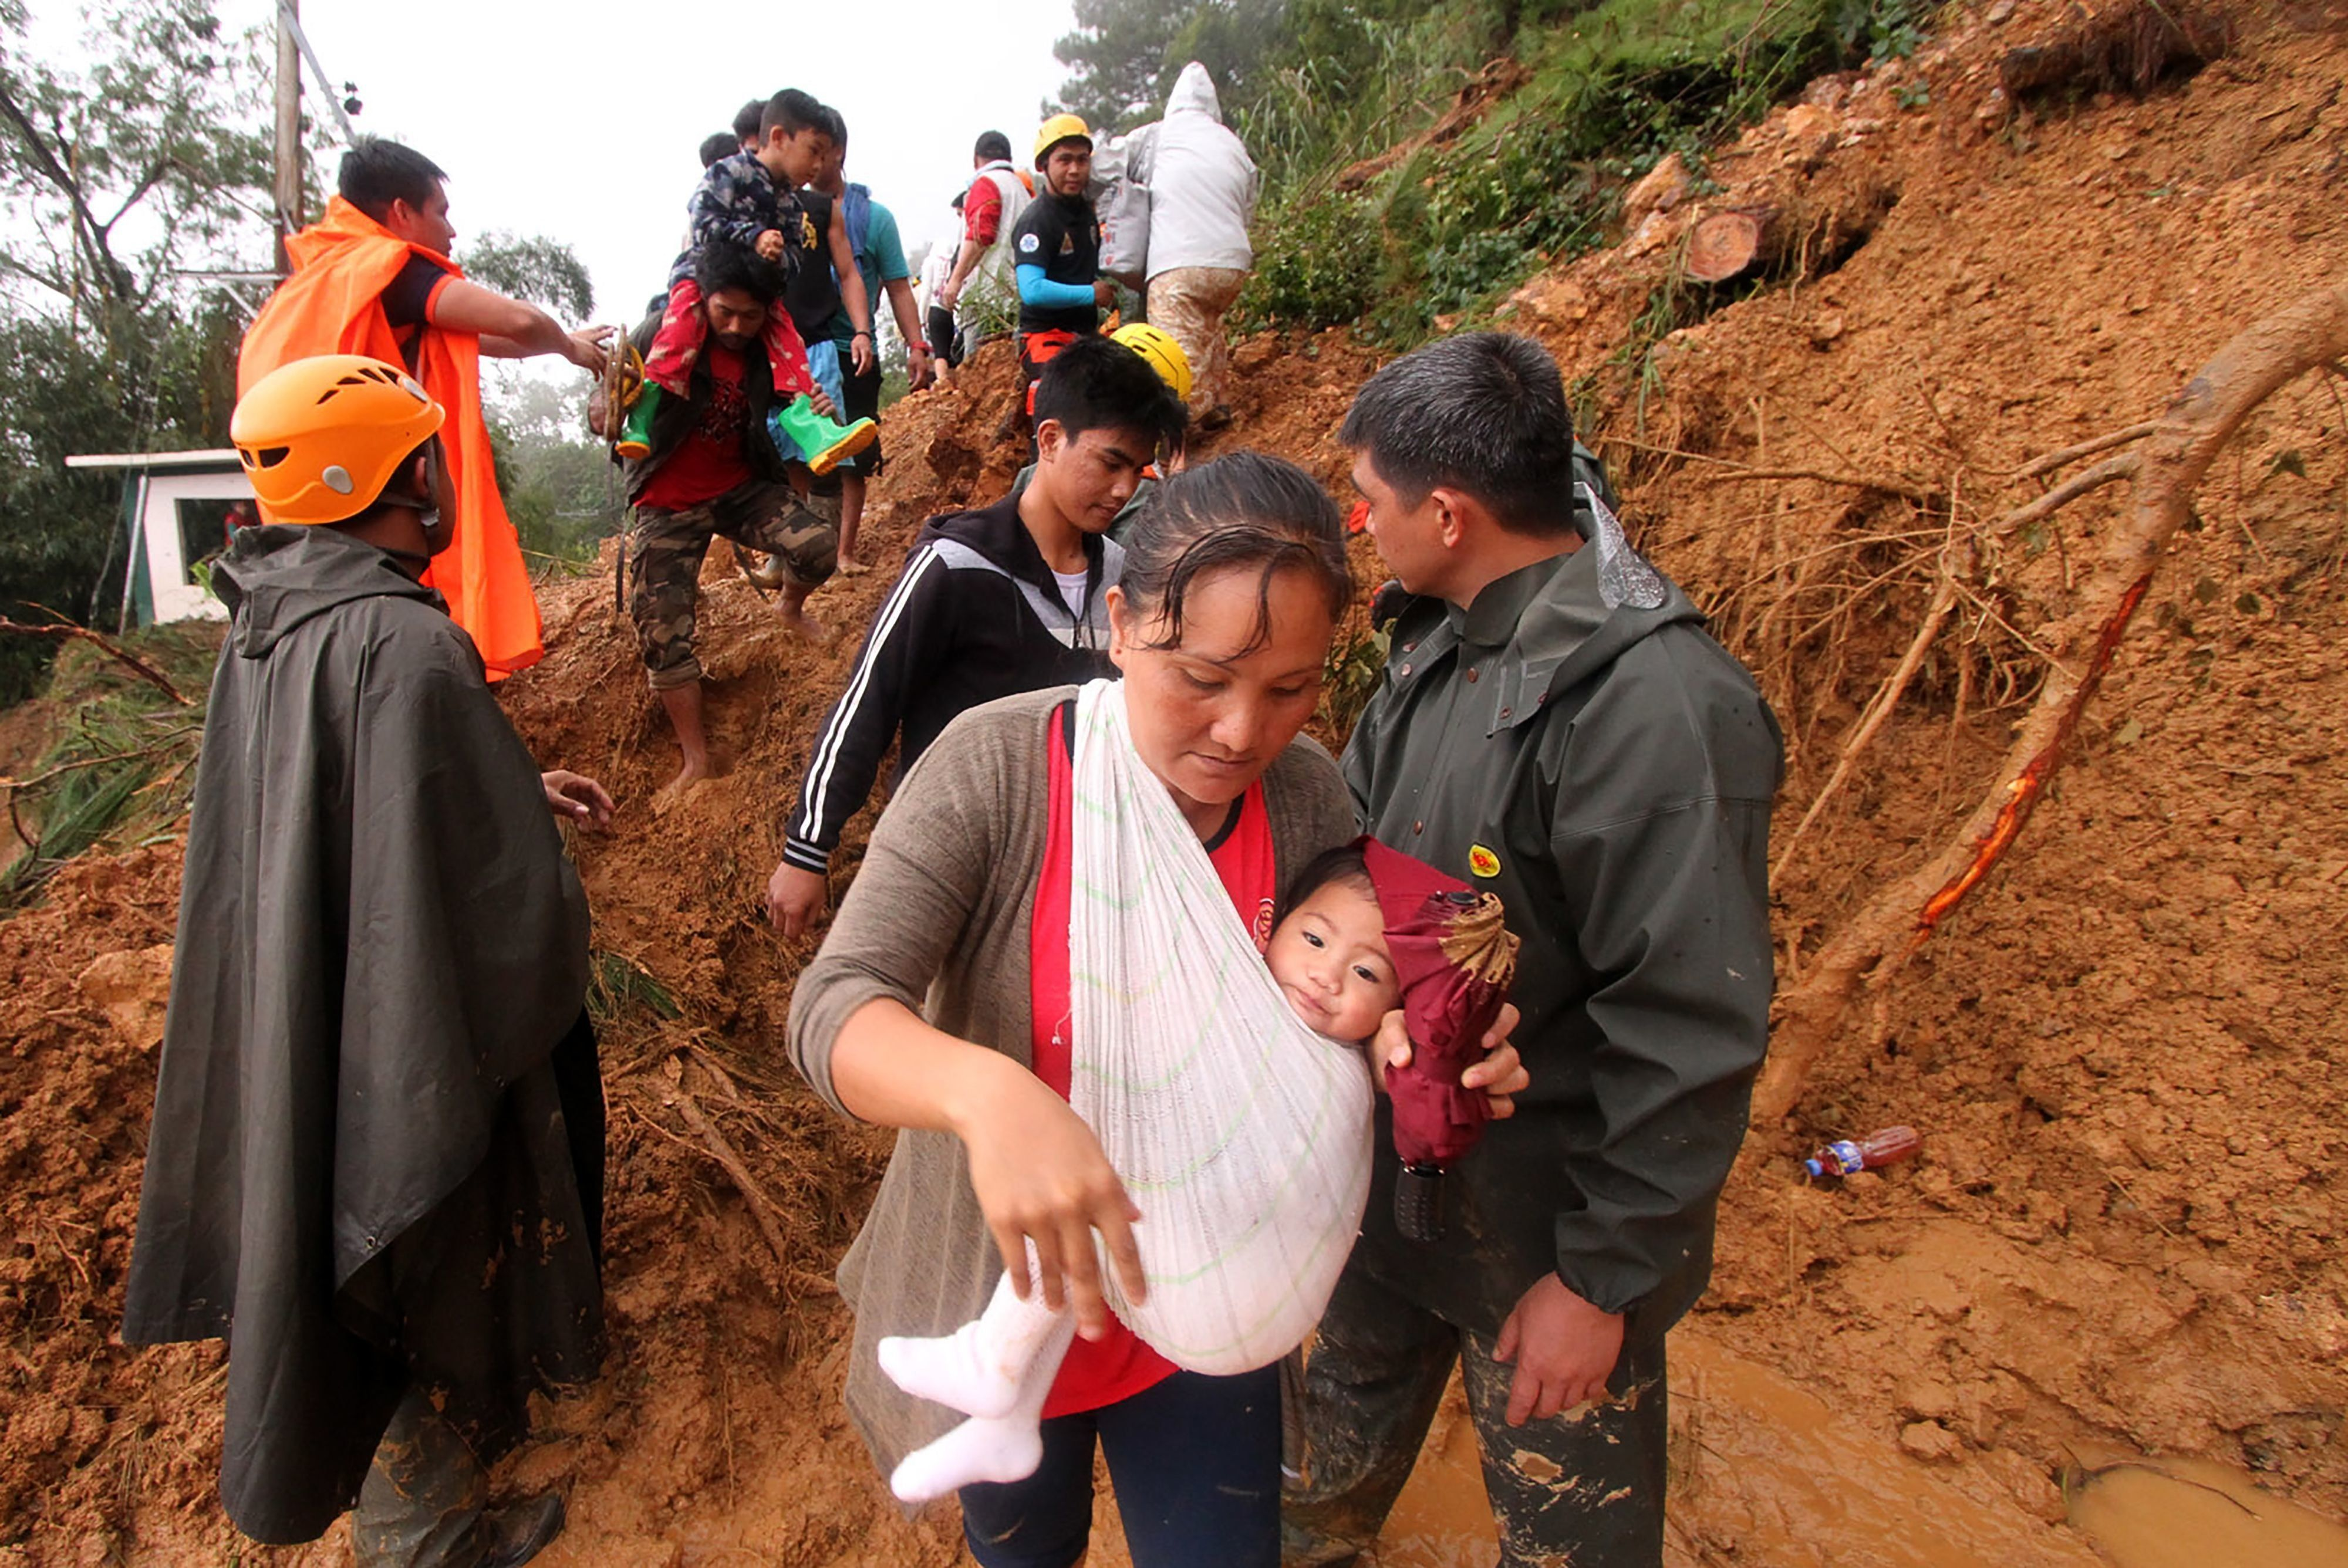 Families and relatives of miners move to safer grounds after massive landslides triggered by Super Typhoon Mangkhut in Itogon town, Benguet province on September 16, 2018. - Typhoon Mangkhut rocked Hong Kong en route to mainland China on September 16, injuring scores and sending skyscrapers swaying, after killing at least 30 people in the Philippines and ripping a swathe of destruction through its agricultural heartland. (Photo by JJ LANDINGIN / AFP)        (Photo credit should read JJ LANDINGIN/AFP/Getty Images)